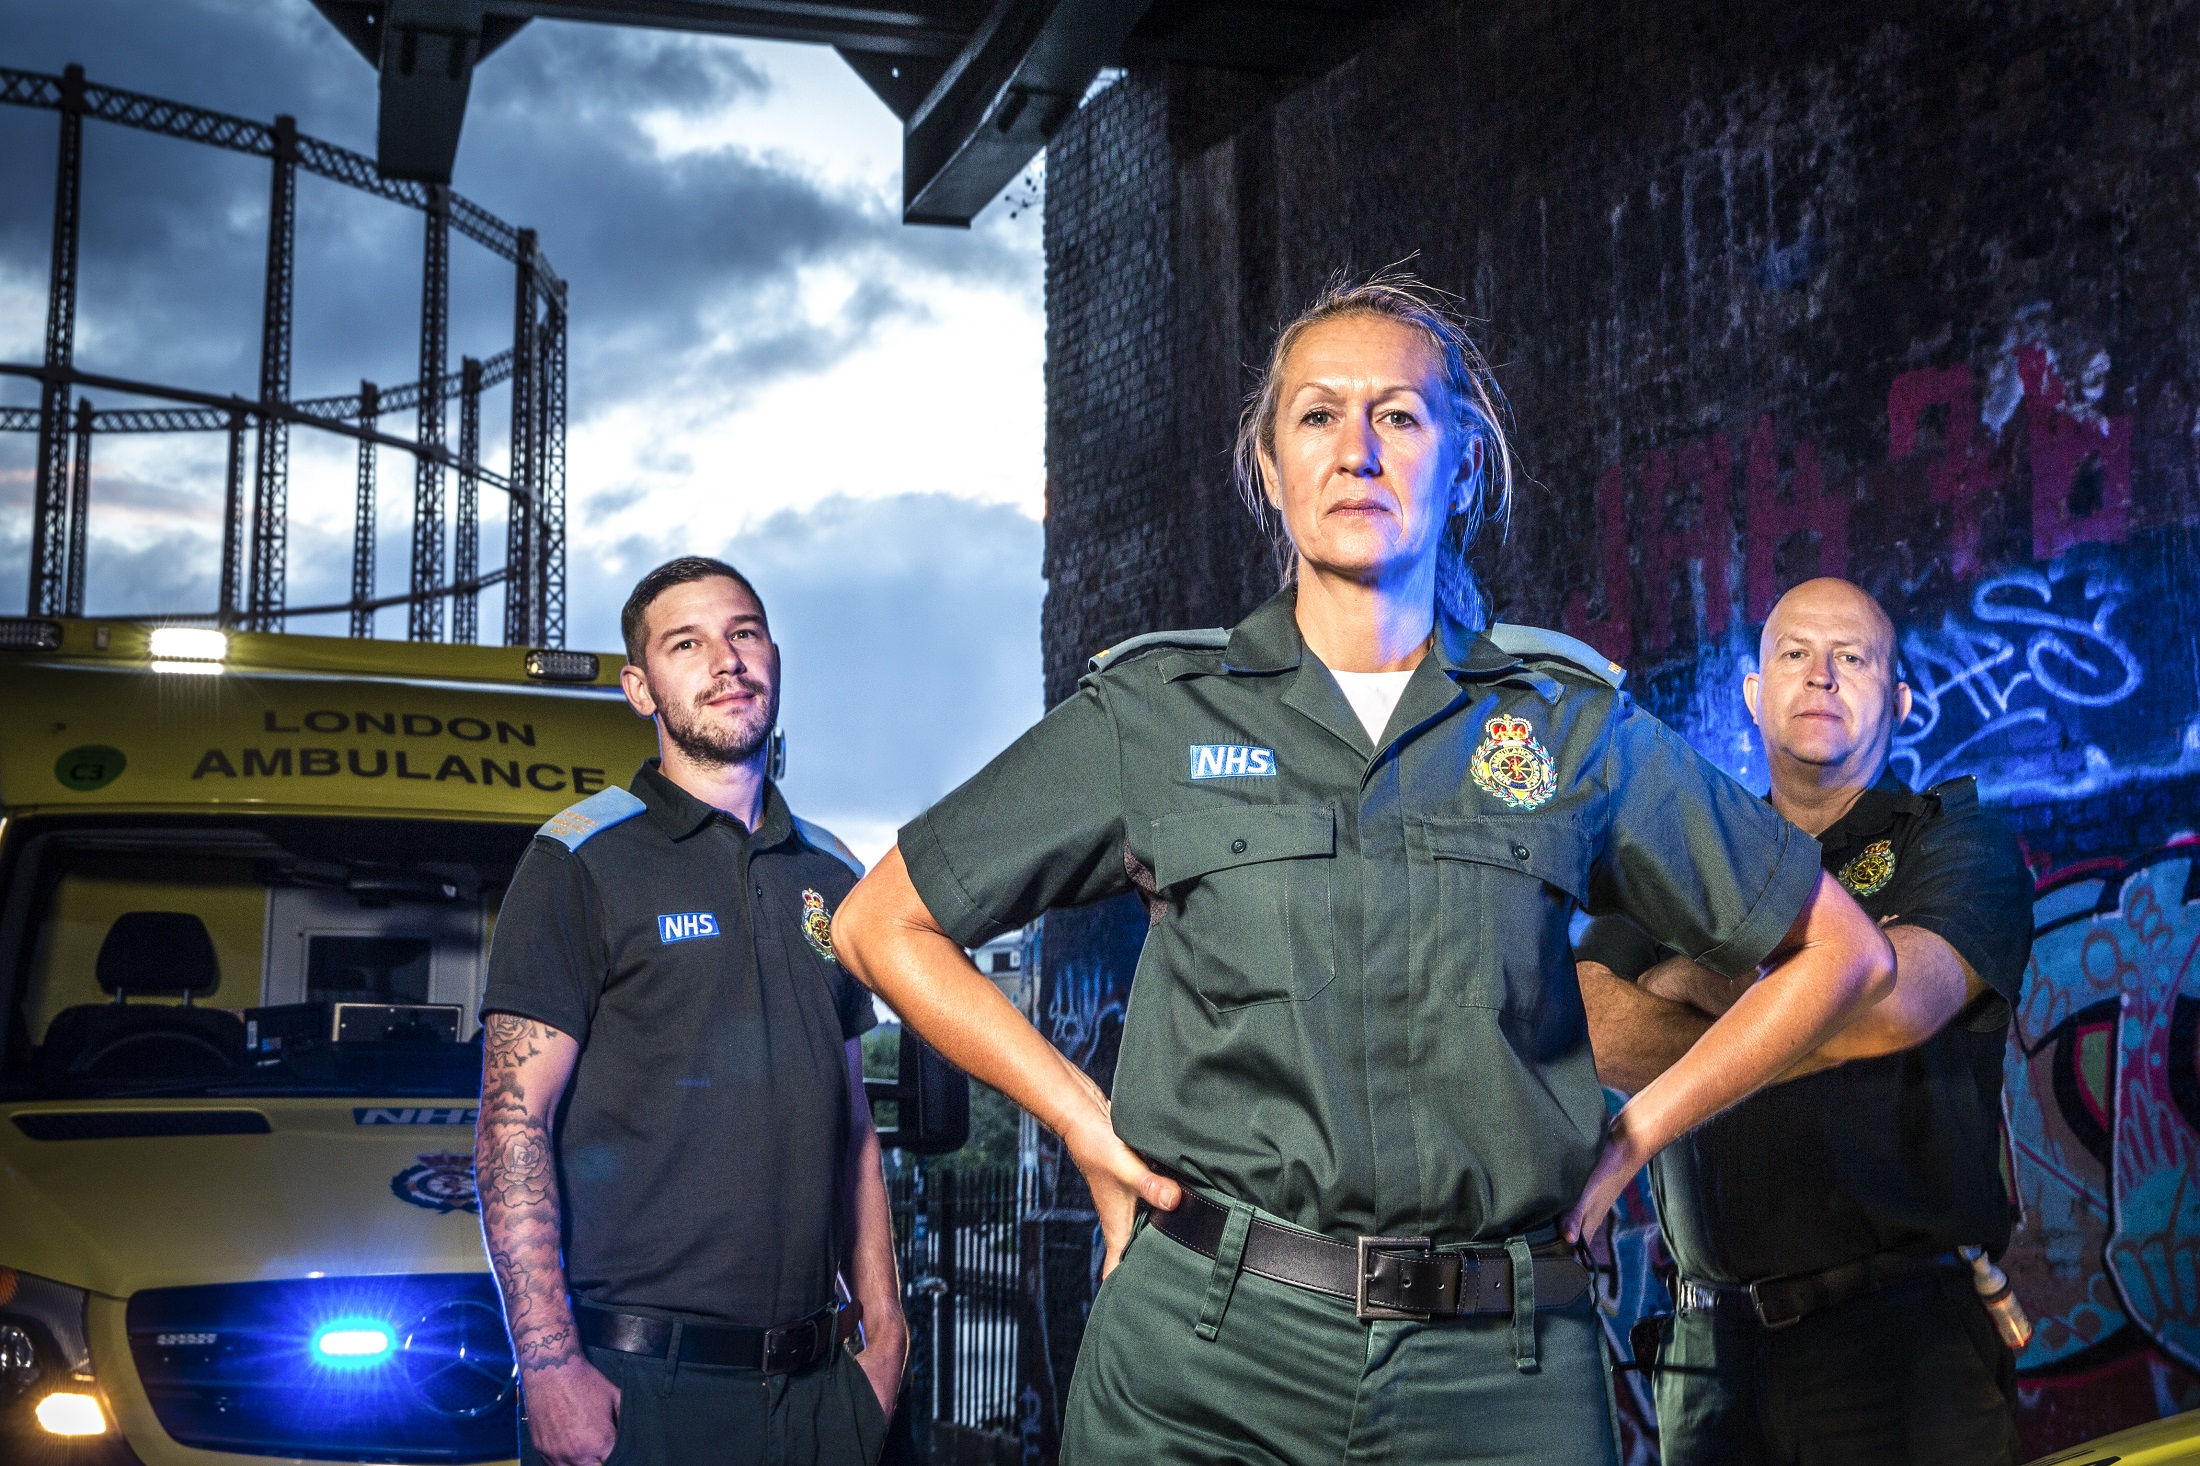 Stuart, Rachel and Pete stood in front on an ambulance in a dark setting